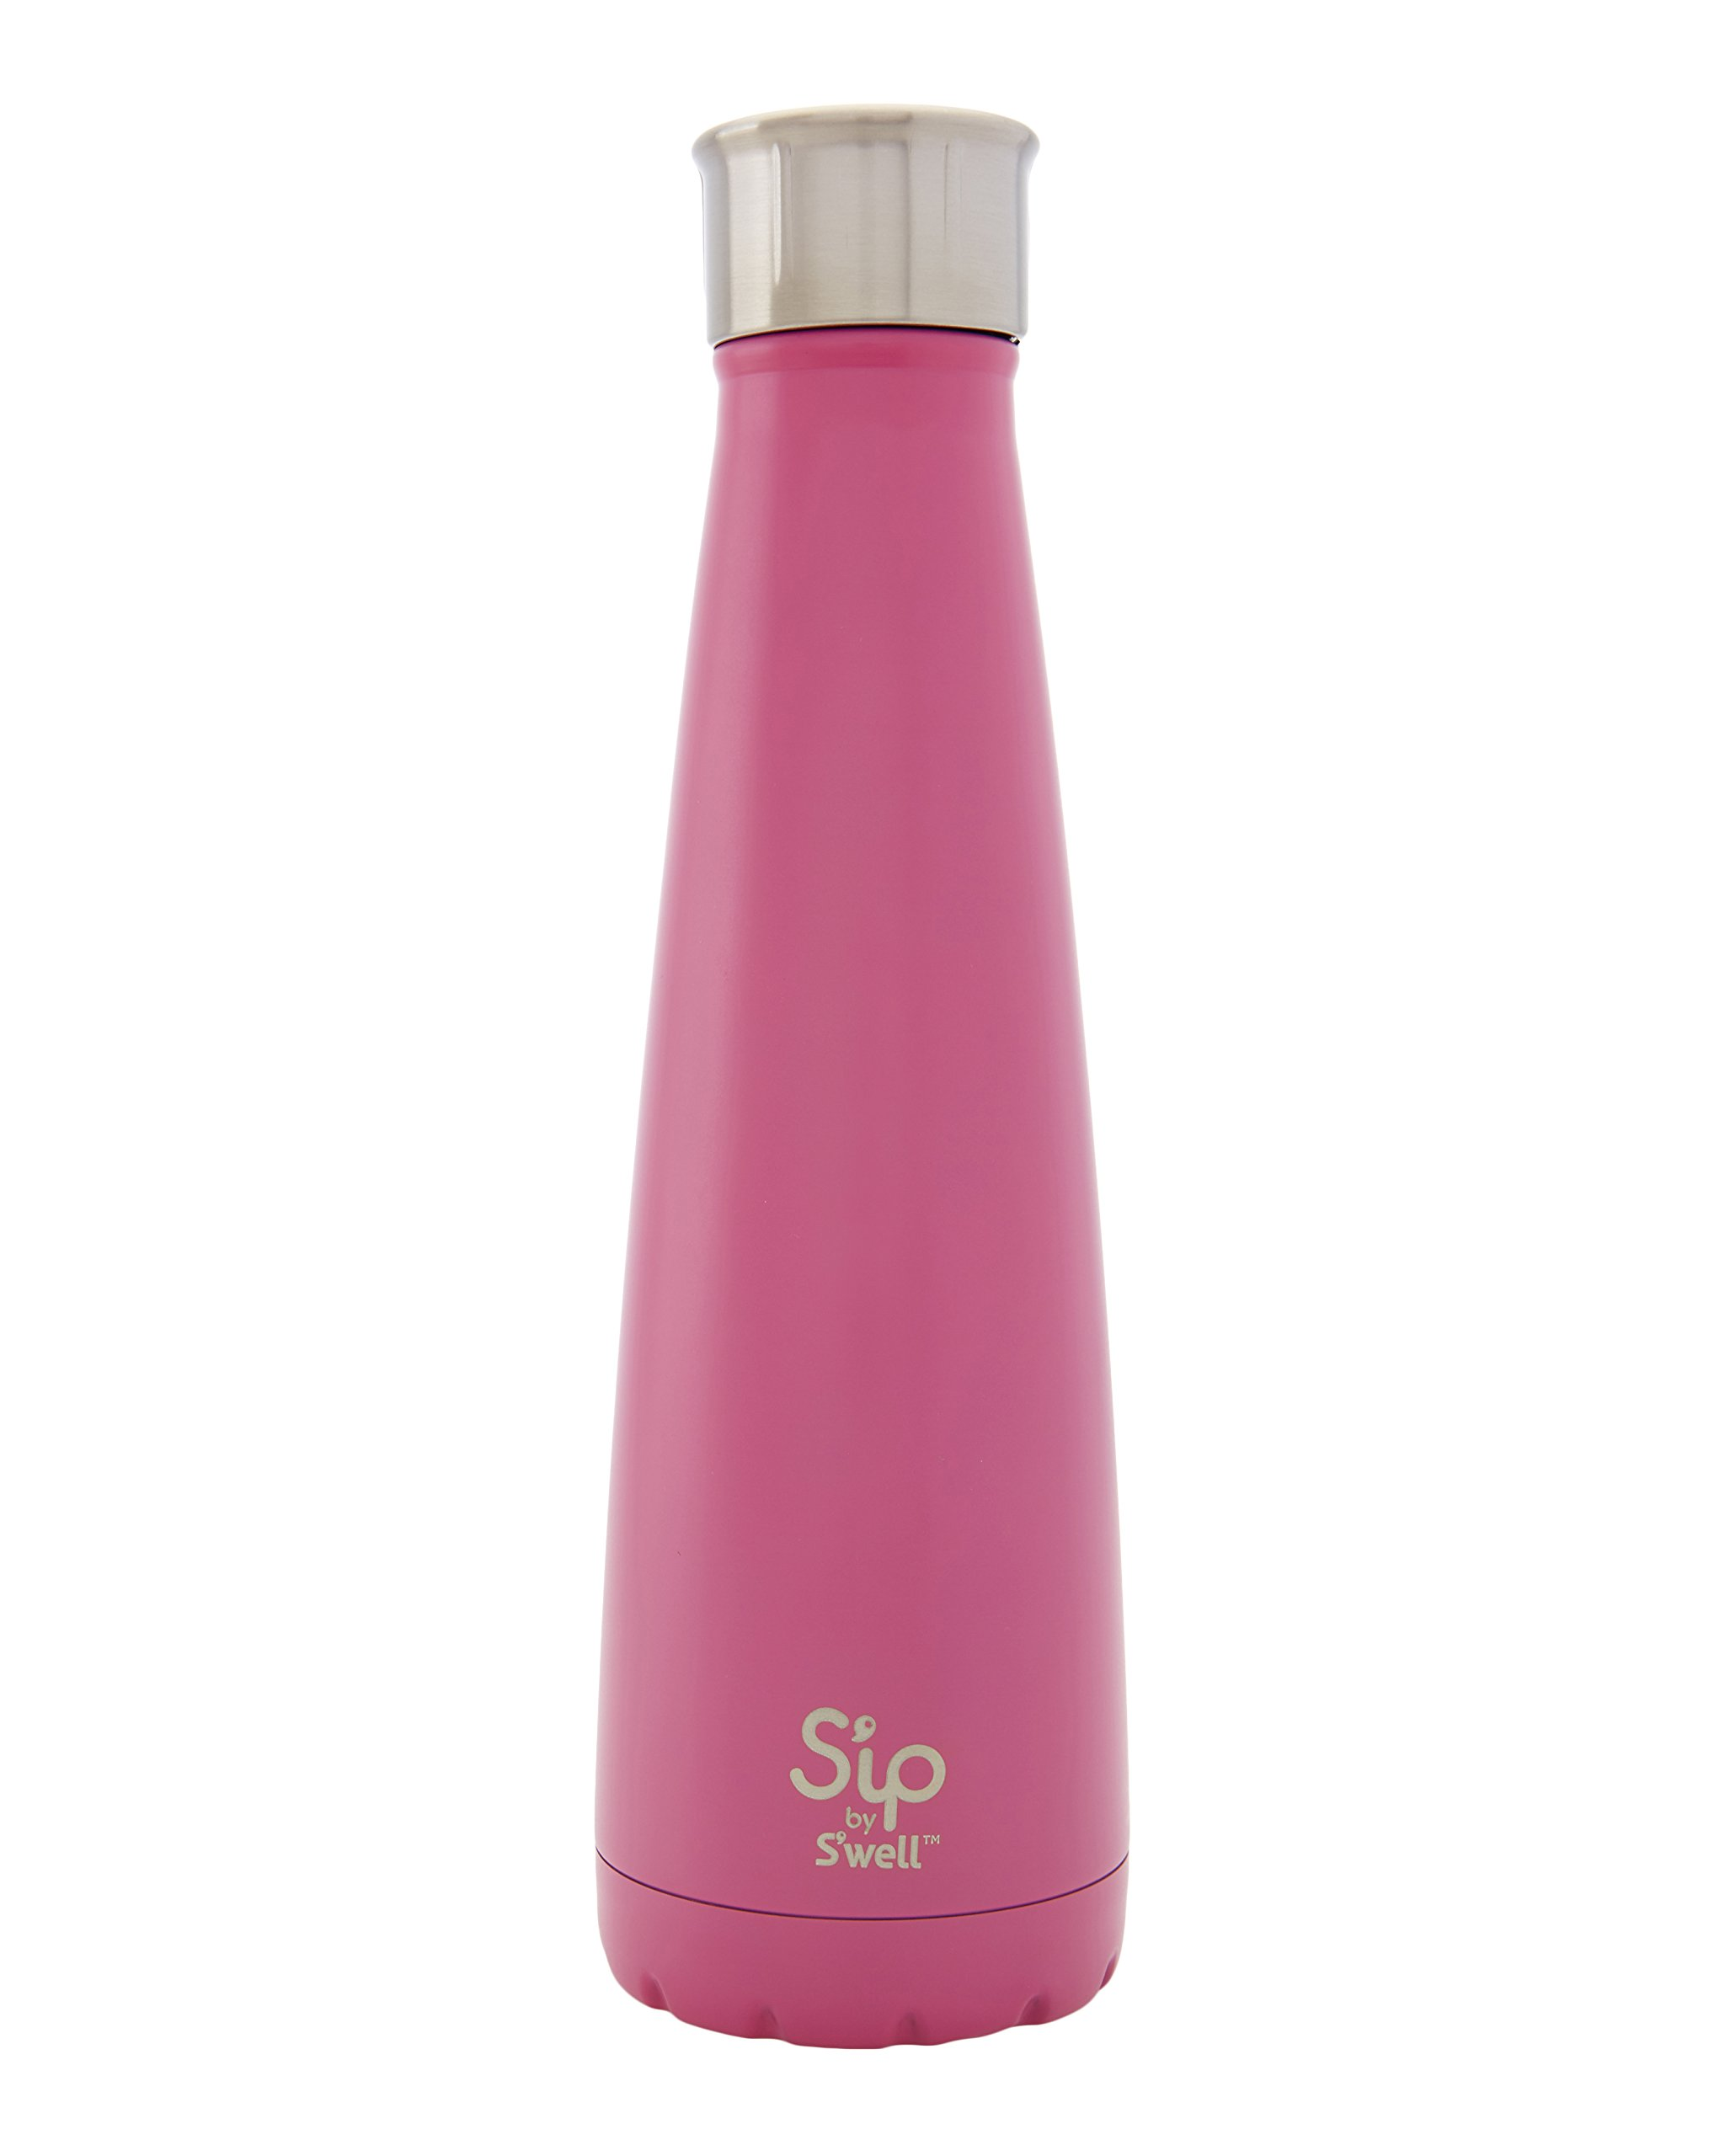 S'ip by S'well Vacuum Insulated Stainless Steel Water Bottle, Double Wall, 15 oz, Bubblegum Pink